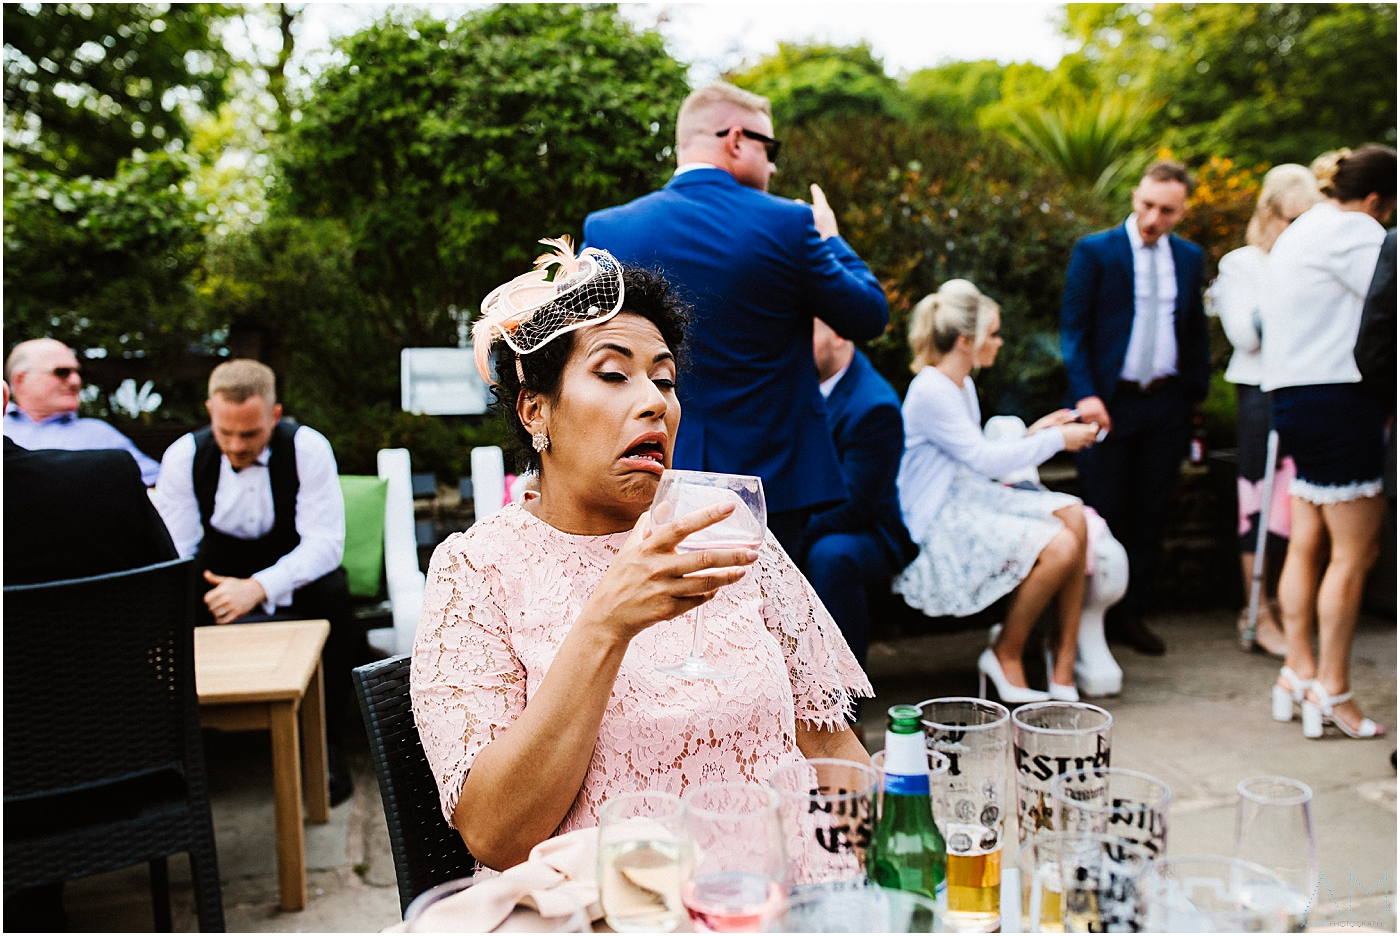 Wedding guest pulling her face